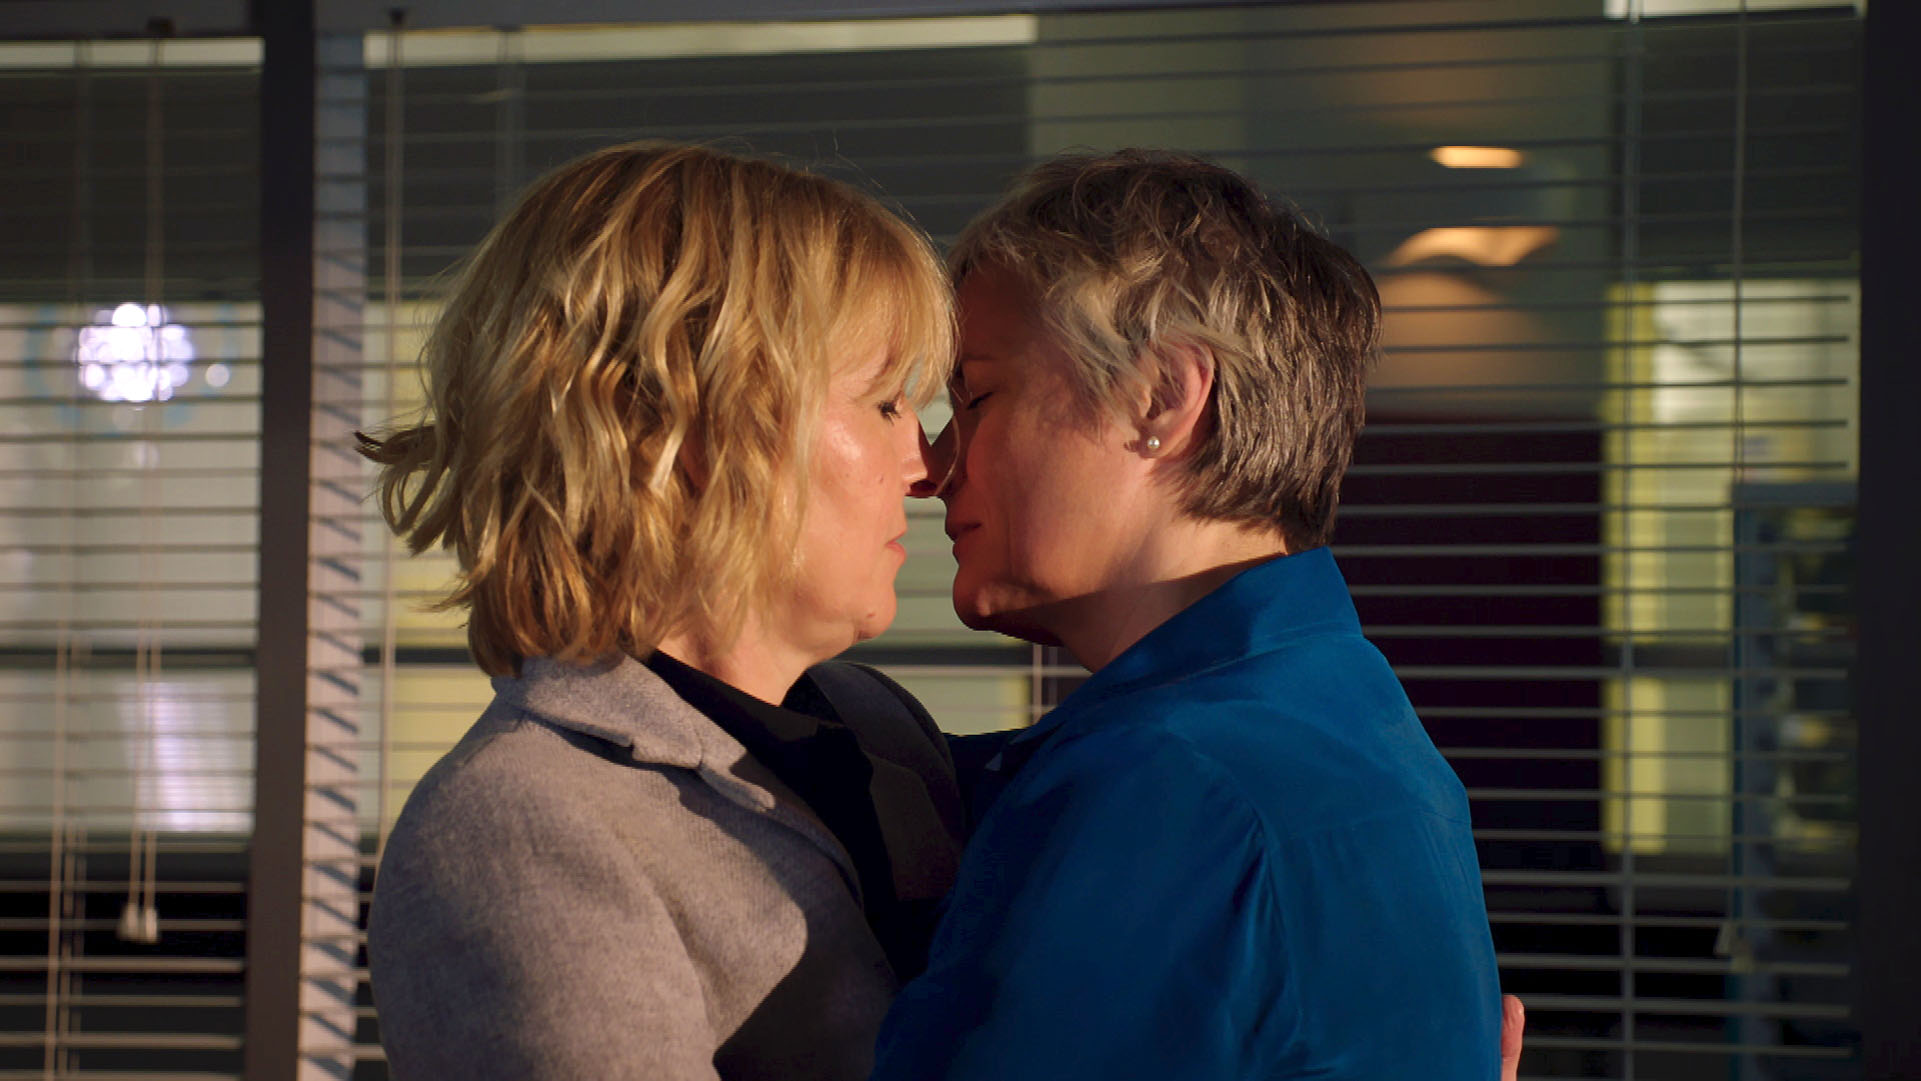 Holby City spoilers: Could Berena be headed for a split? Executive producer hints at end for Serena and Bernie